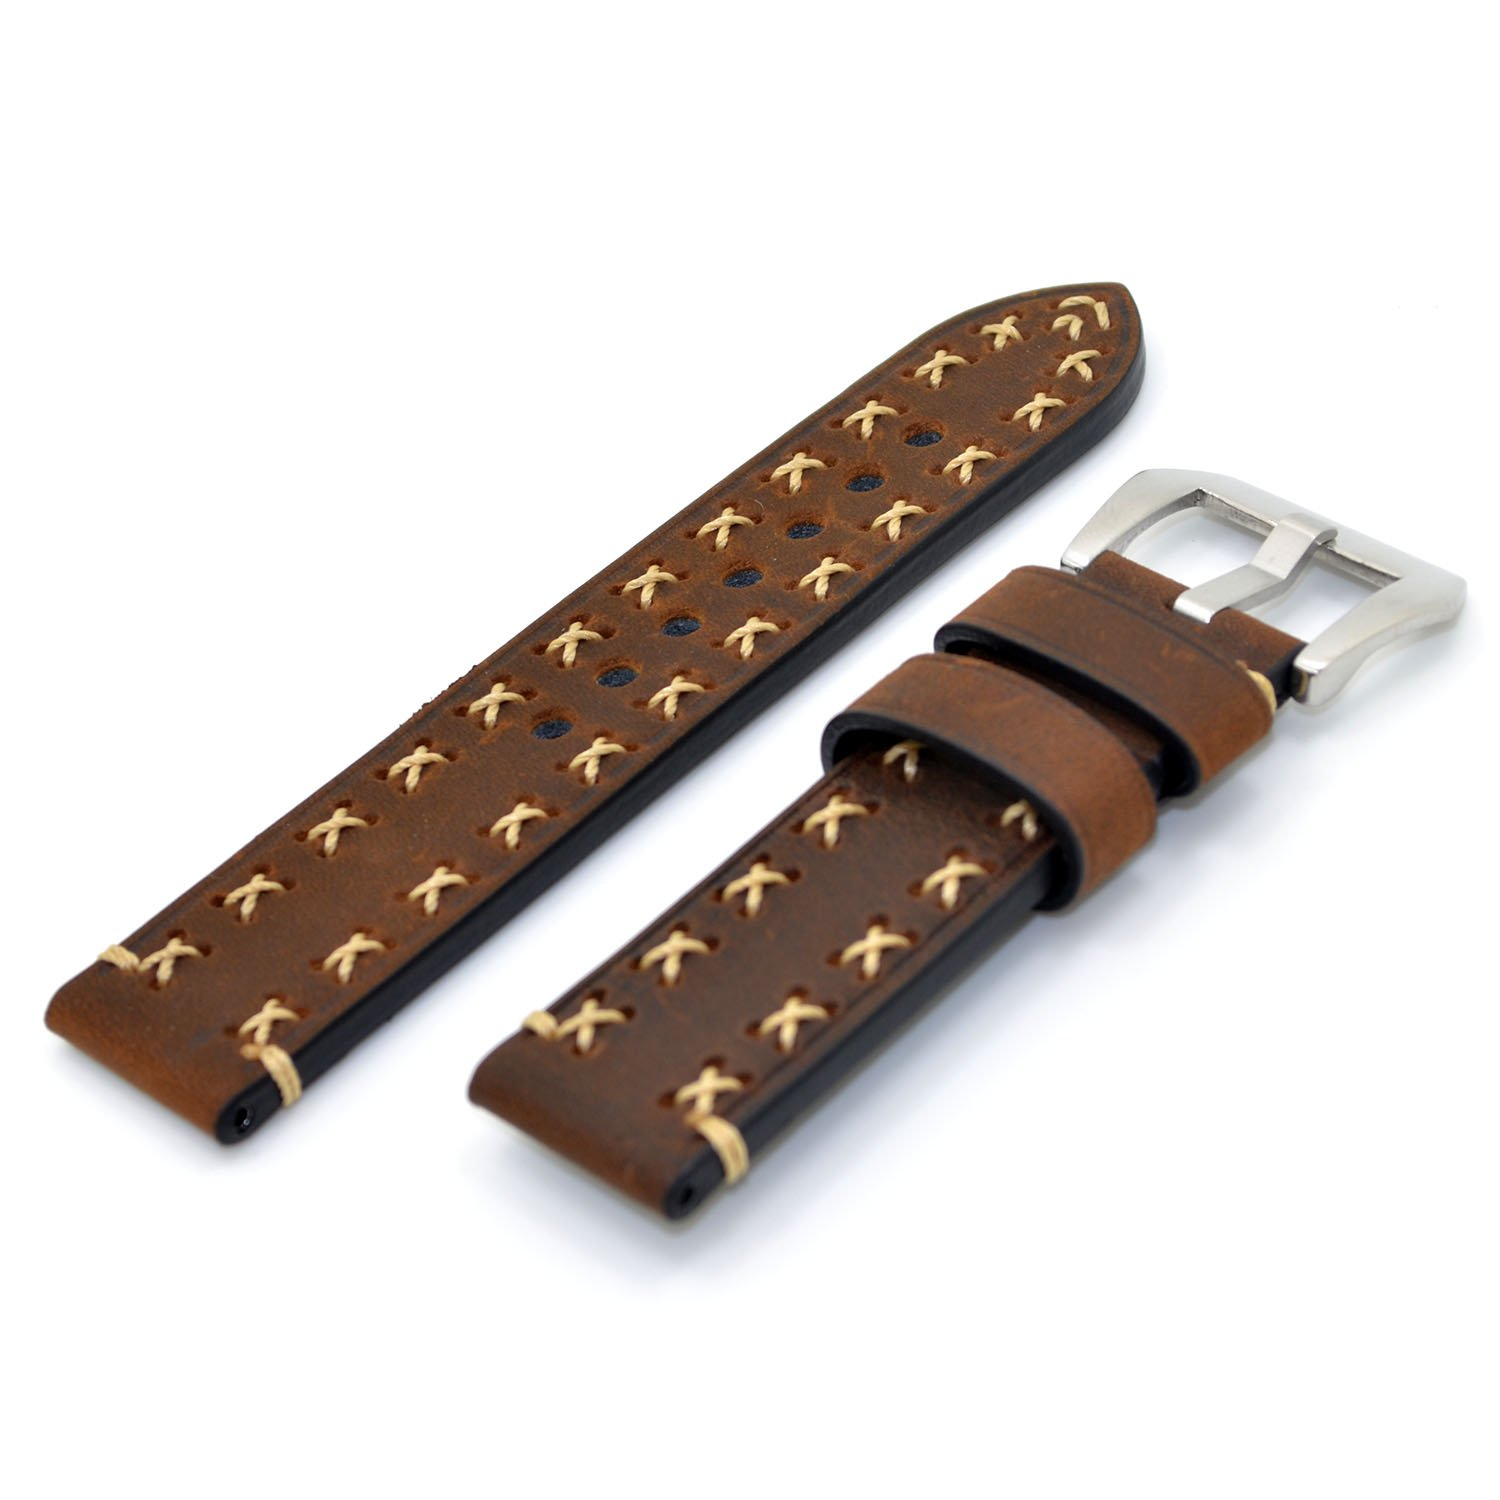 22mm Dark Brown Watch Band Italy Calf Leather Handmade Strap for Panerai Watch, LG Smart Watch, Pebble Time Watch and Regular wrist watch